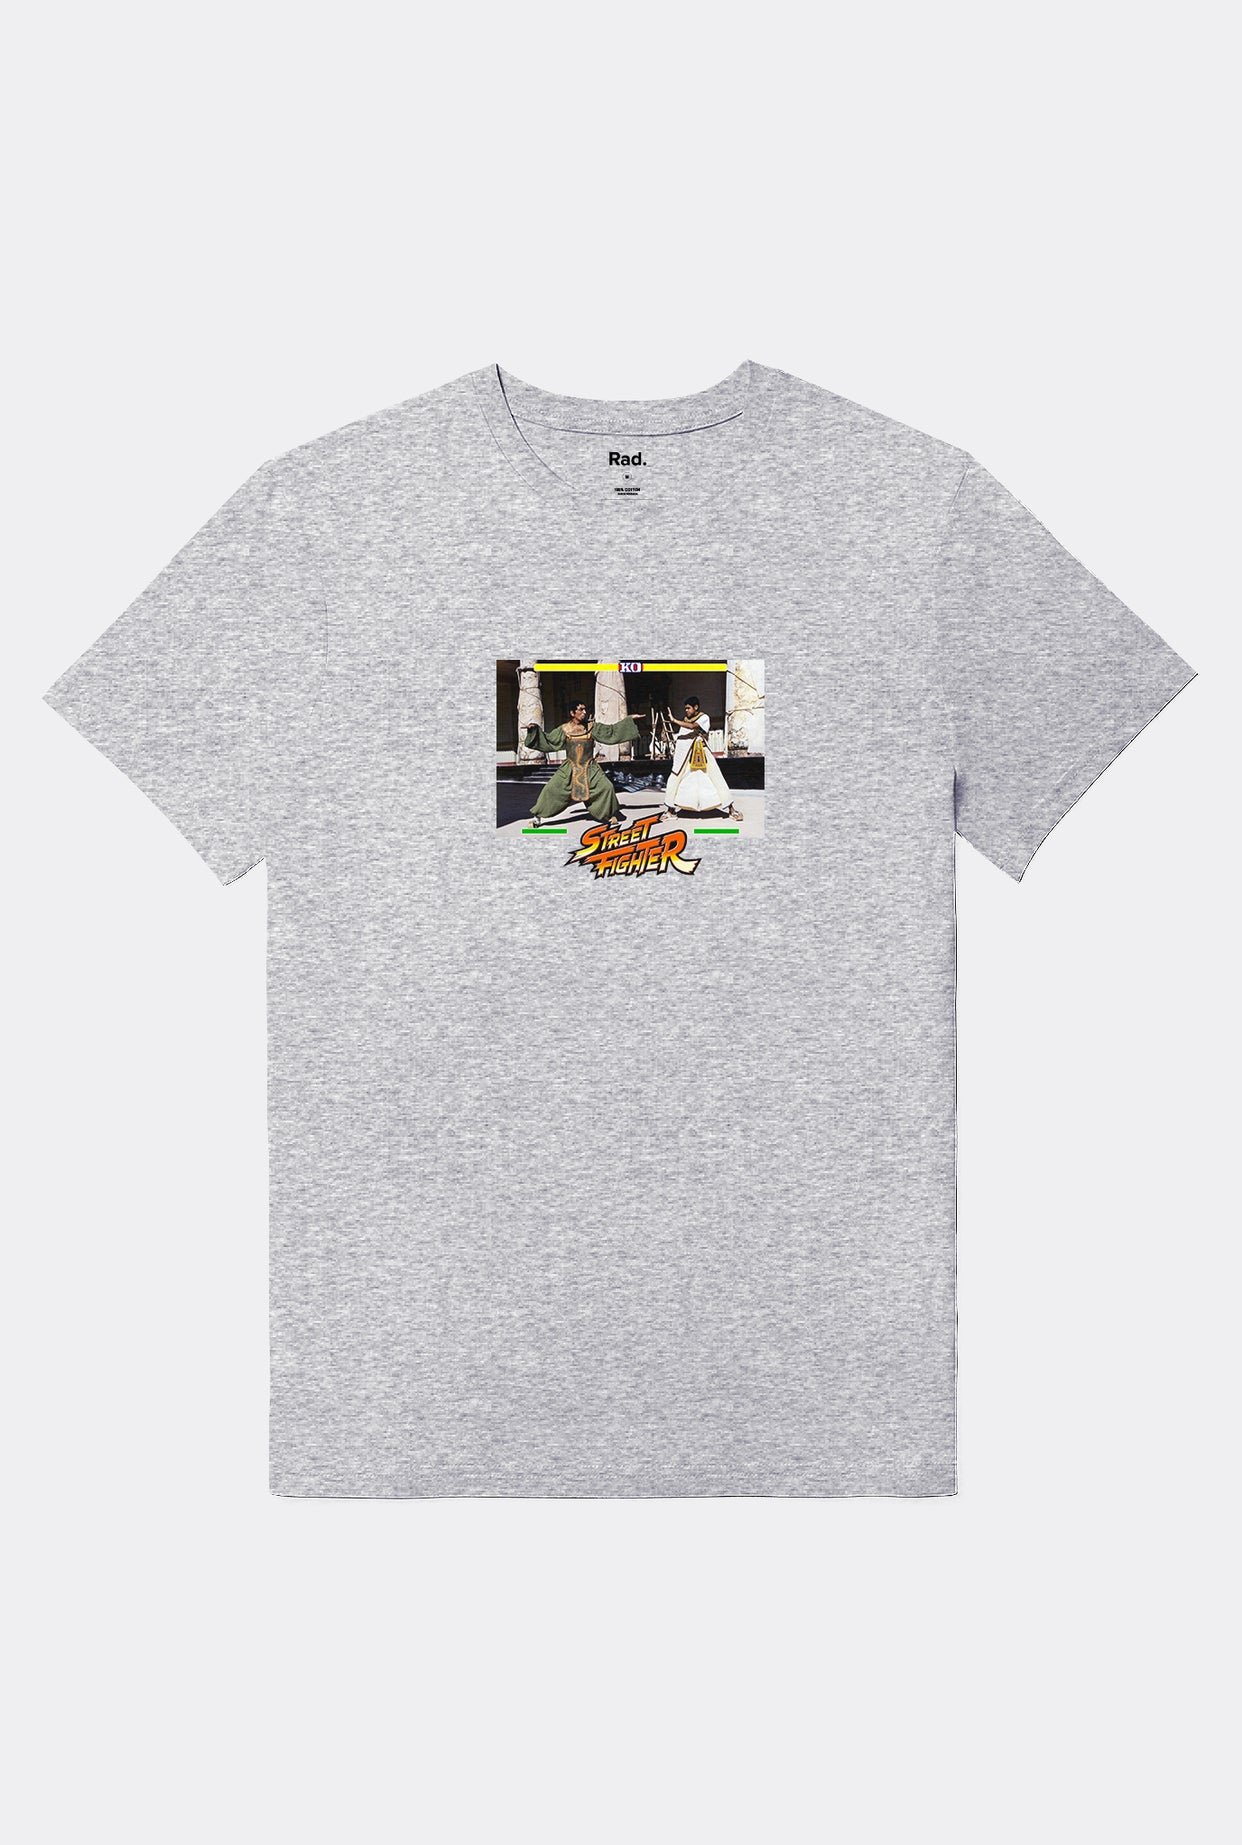 T-Shirt S/S Street Fighter